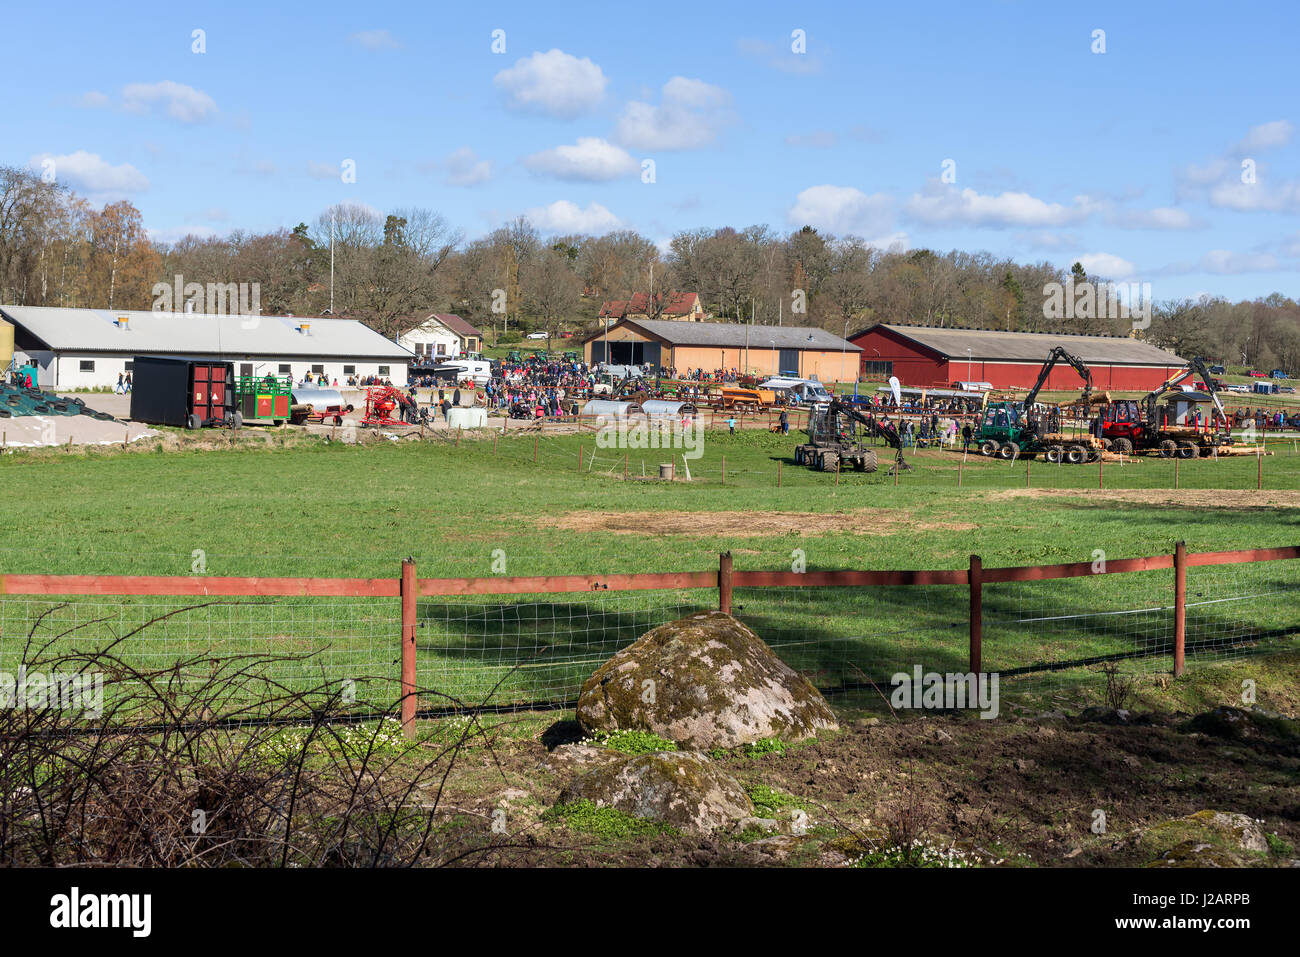 Brakne Hoby, Sweden - April 22, 2017: Documentary of small public farmers day. The agricultural school yard used - Stock Image